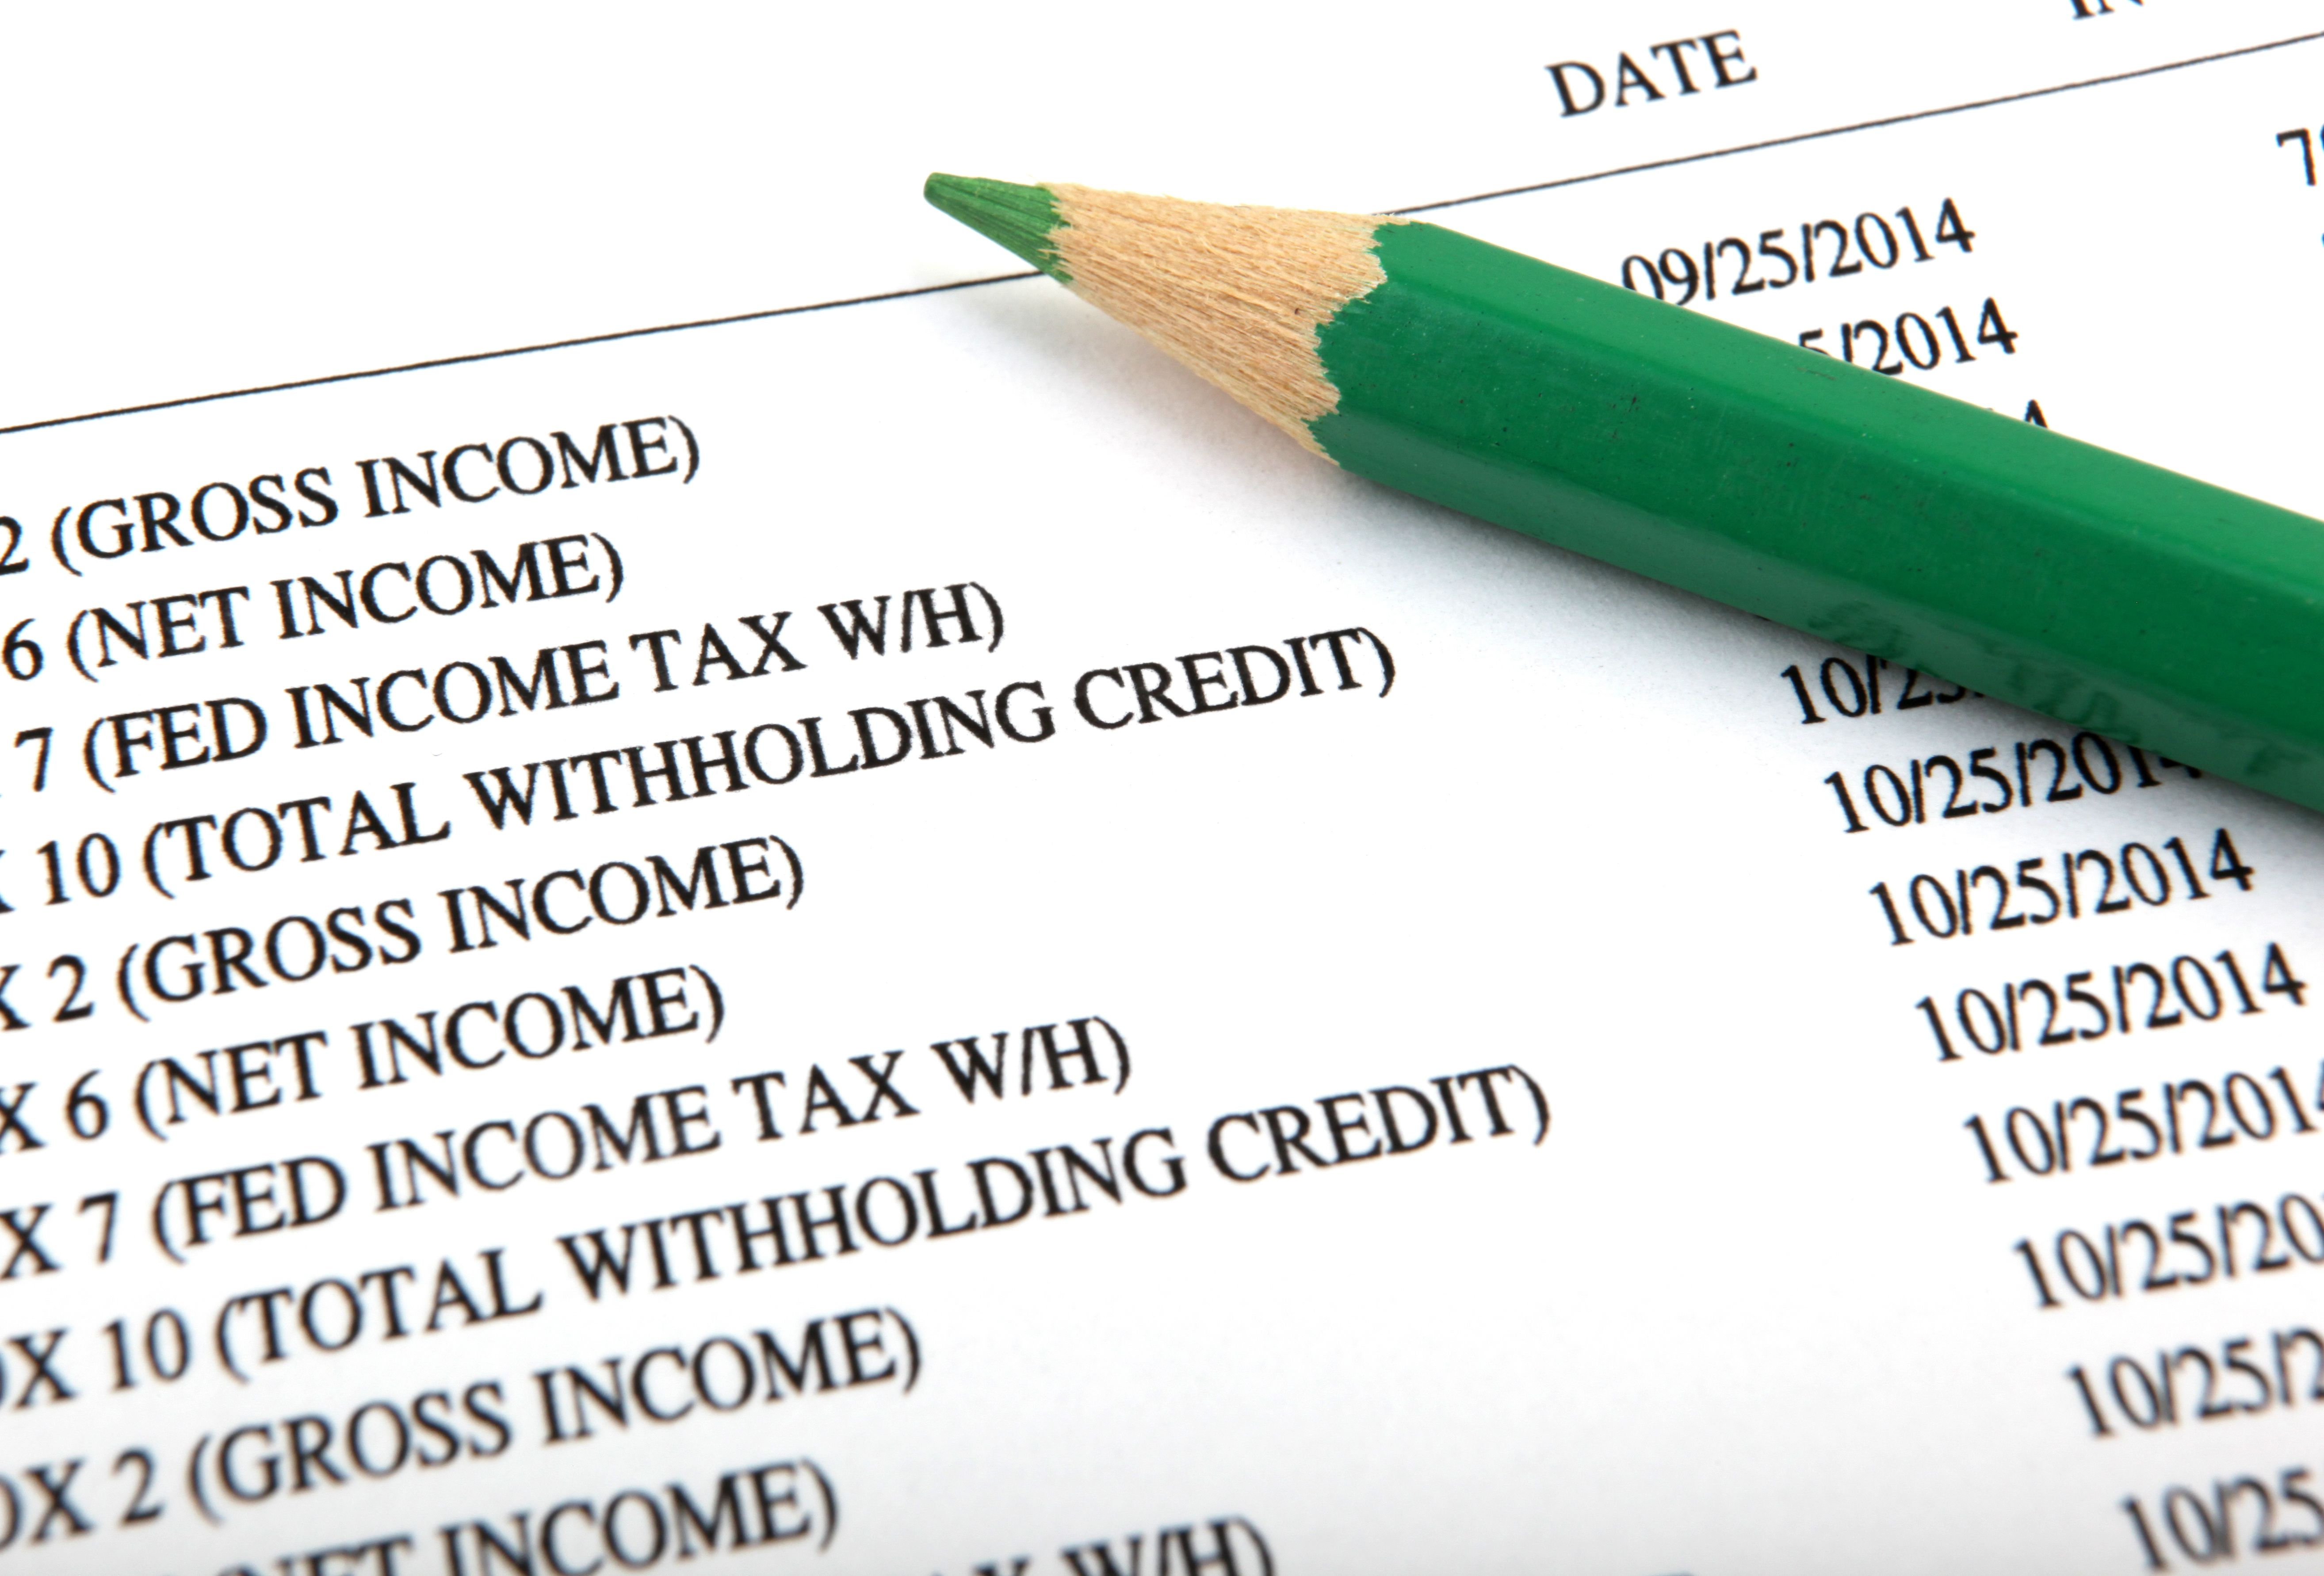 Do you pay income tax on stock options